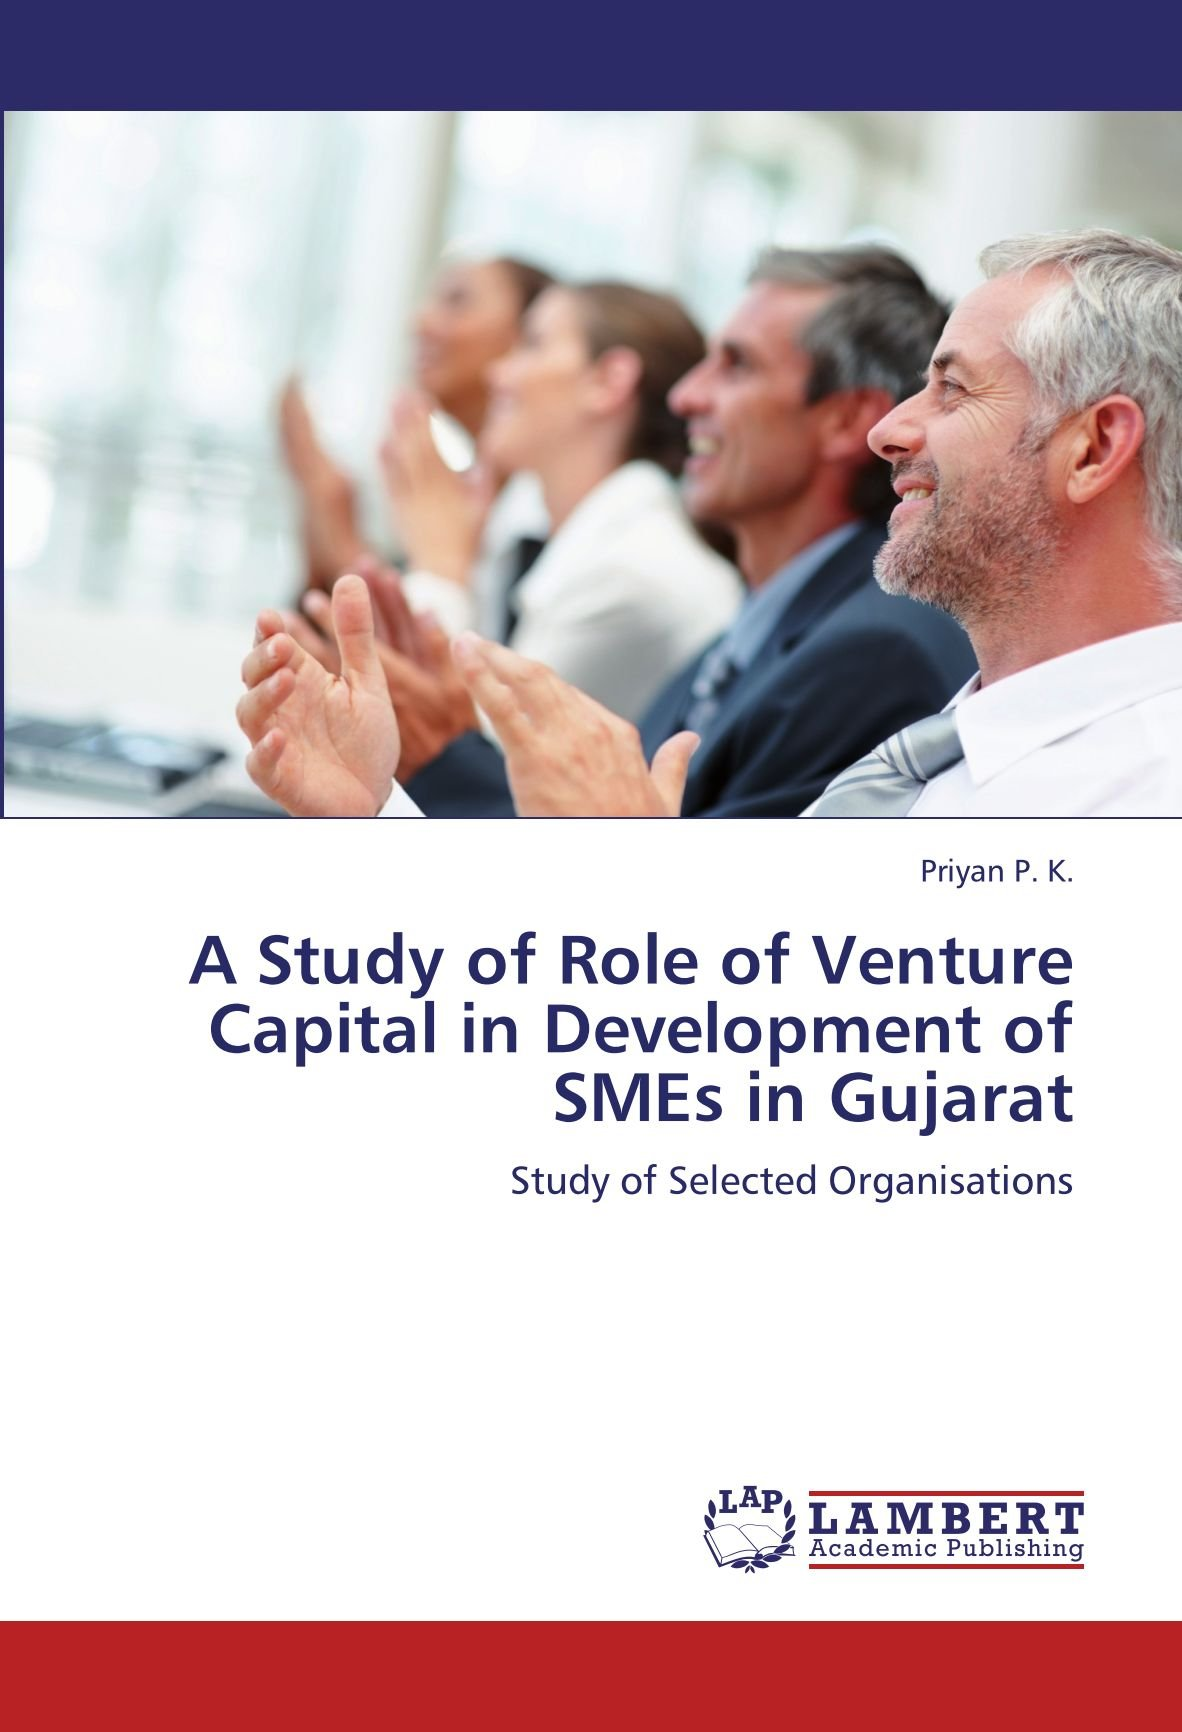 A Study of Role of Venture Capital in Development of SMEs in Gujarat: Study of Selected Organisations